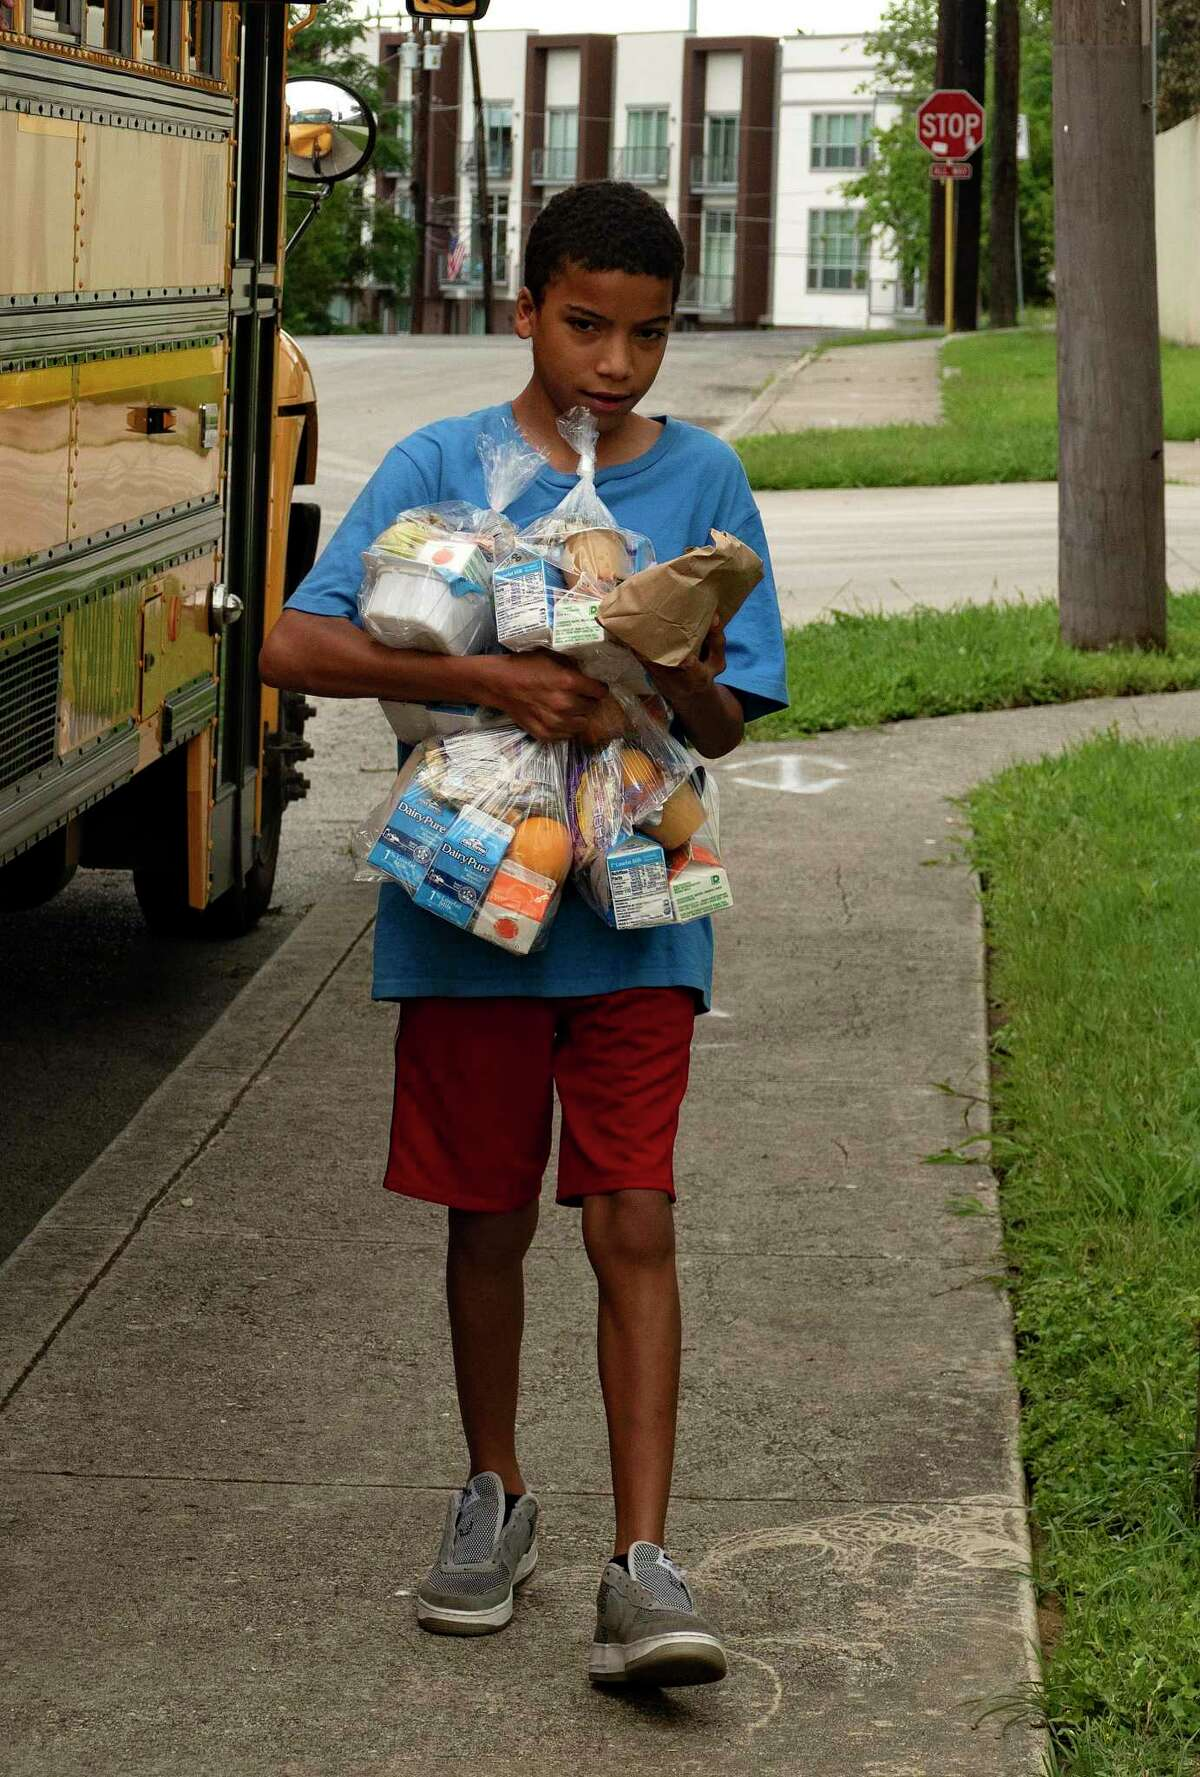 In June, a student carries food provided by SAISD. Families of Texas students who qualified for free or reduced price meals are eligible for $285 per student from the state. The deadline to apply is July 31.